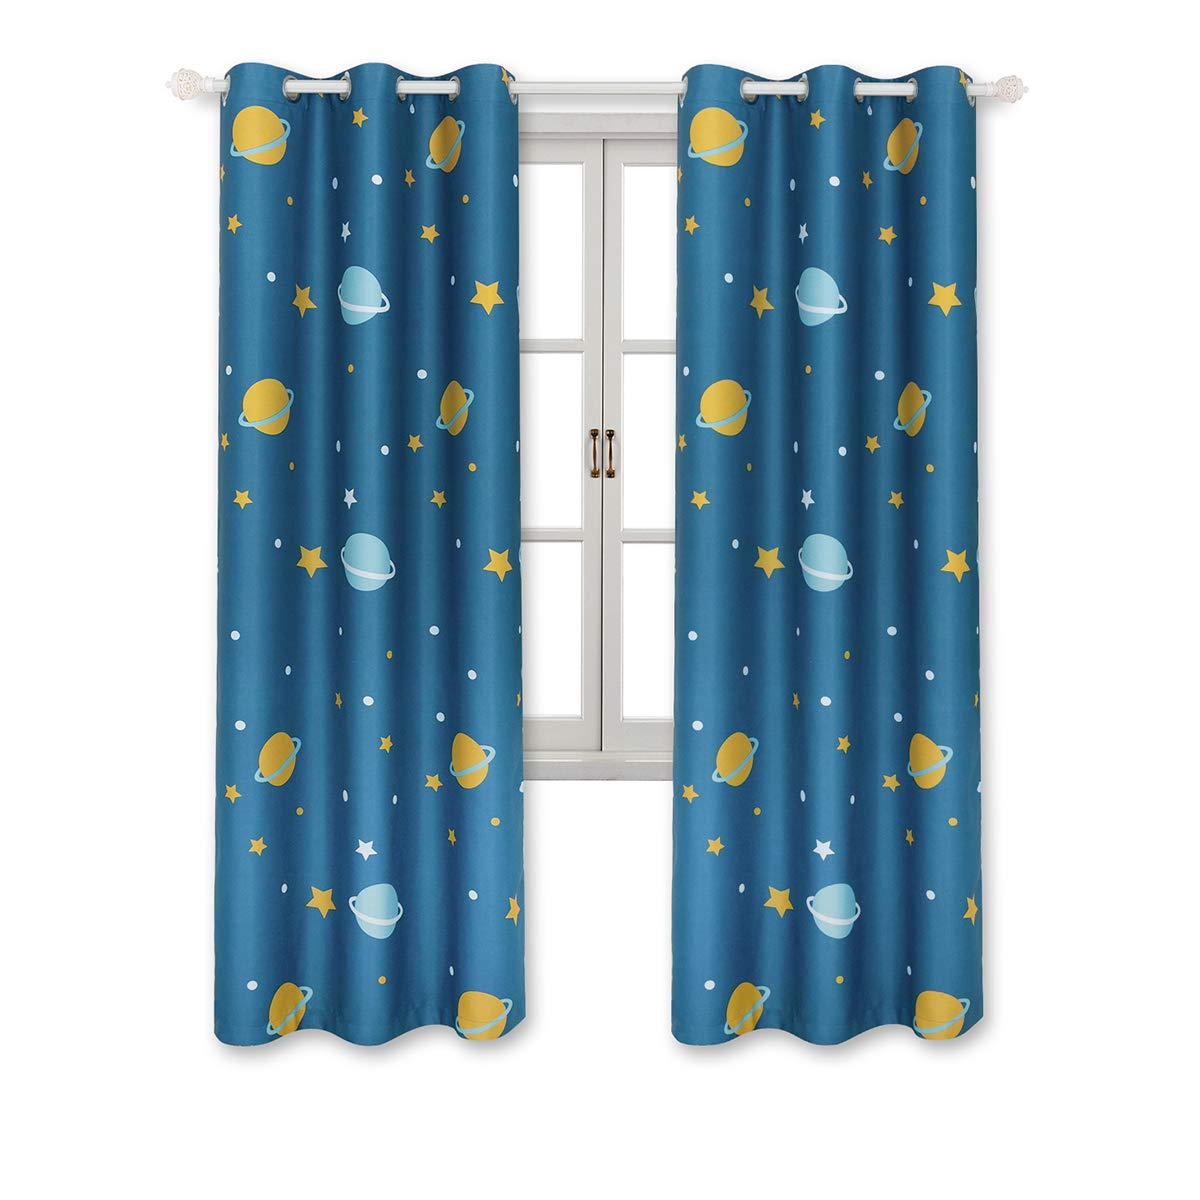 BGment Blackout Planet and Star Curtains - Cute Planet Printed Curtains for Bedroom Living Room - 2 Panels 42Wx63L with 6 Grommets